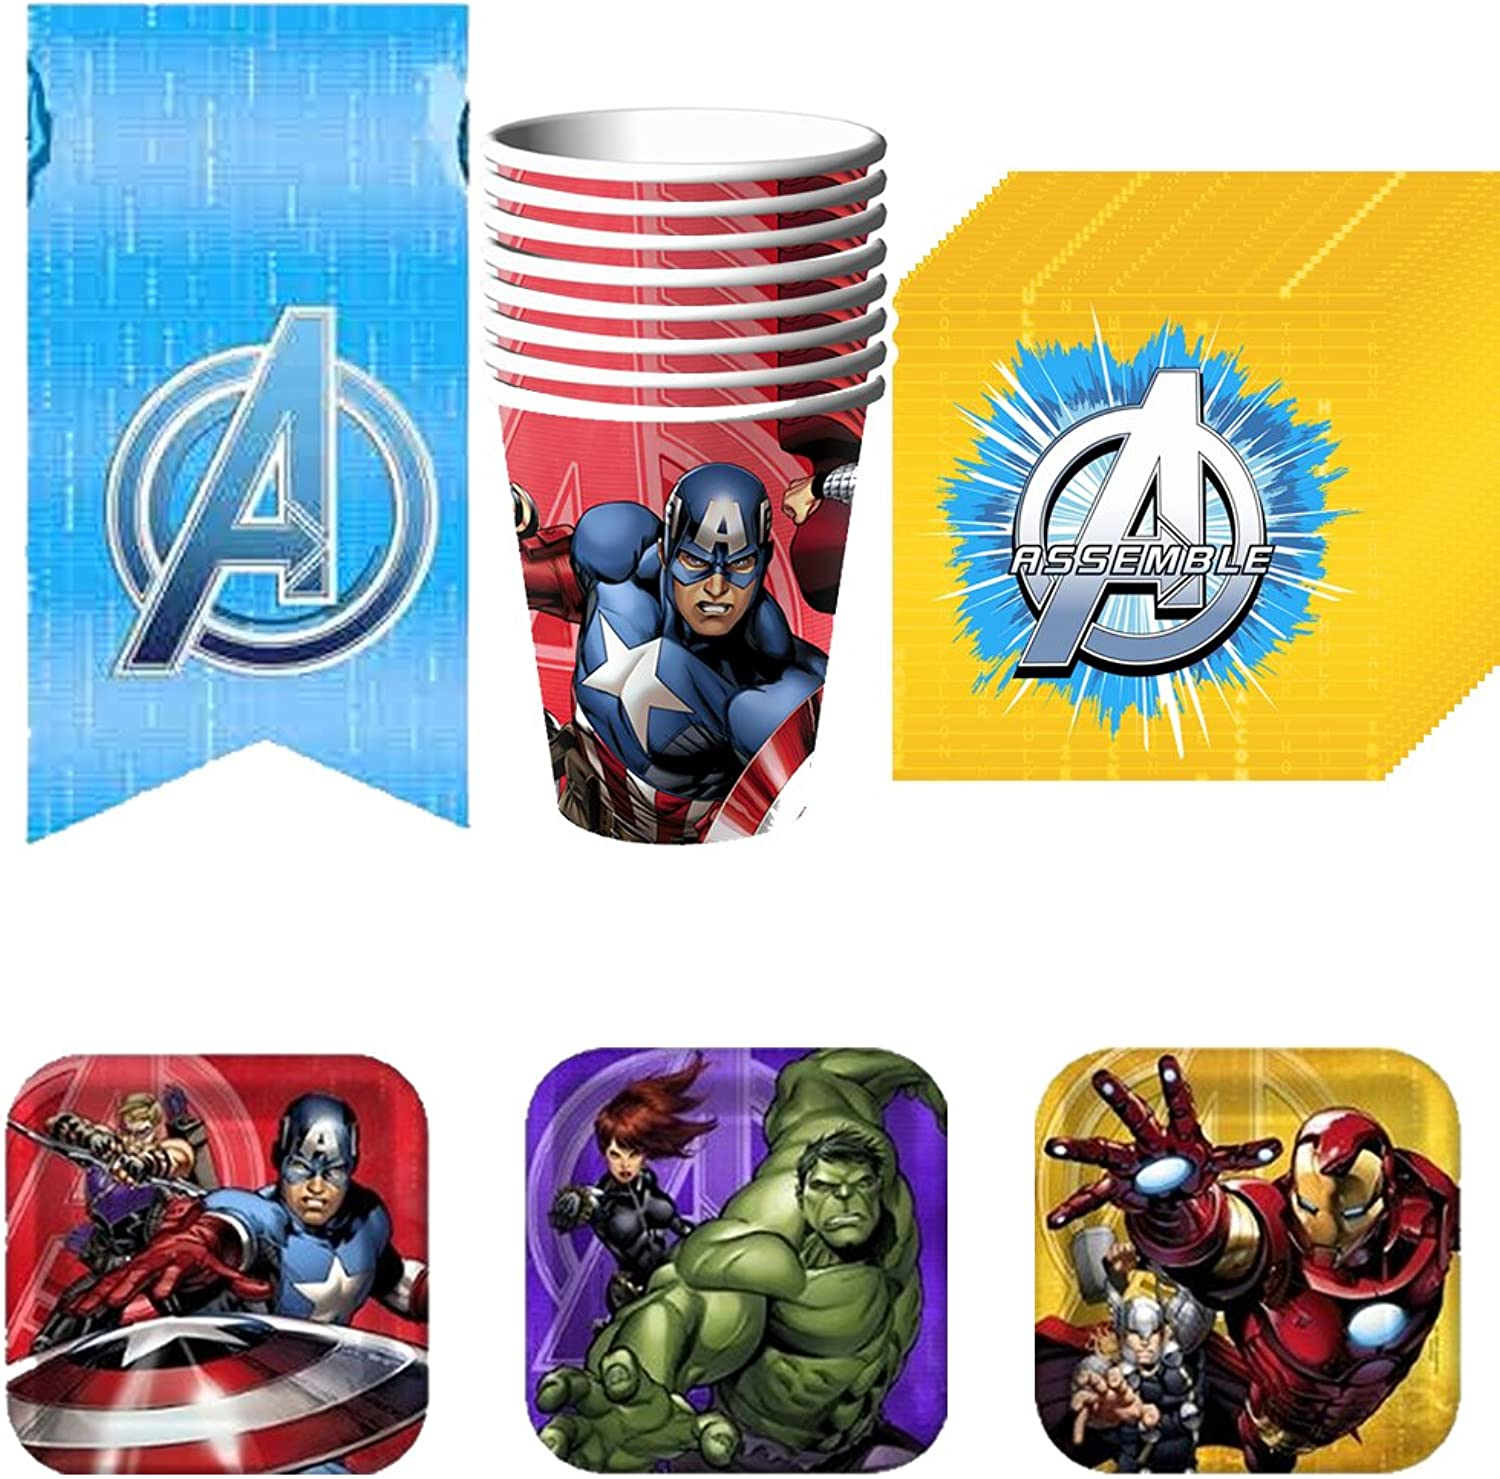 Avengers Assemble Party Supplies Pack Including Cups, Plates, Napkins and Tablecover for 8 Guests